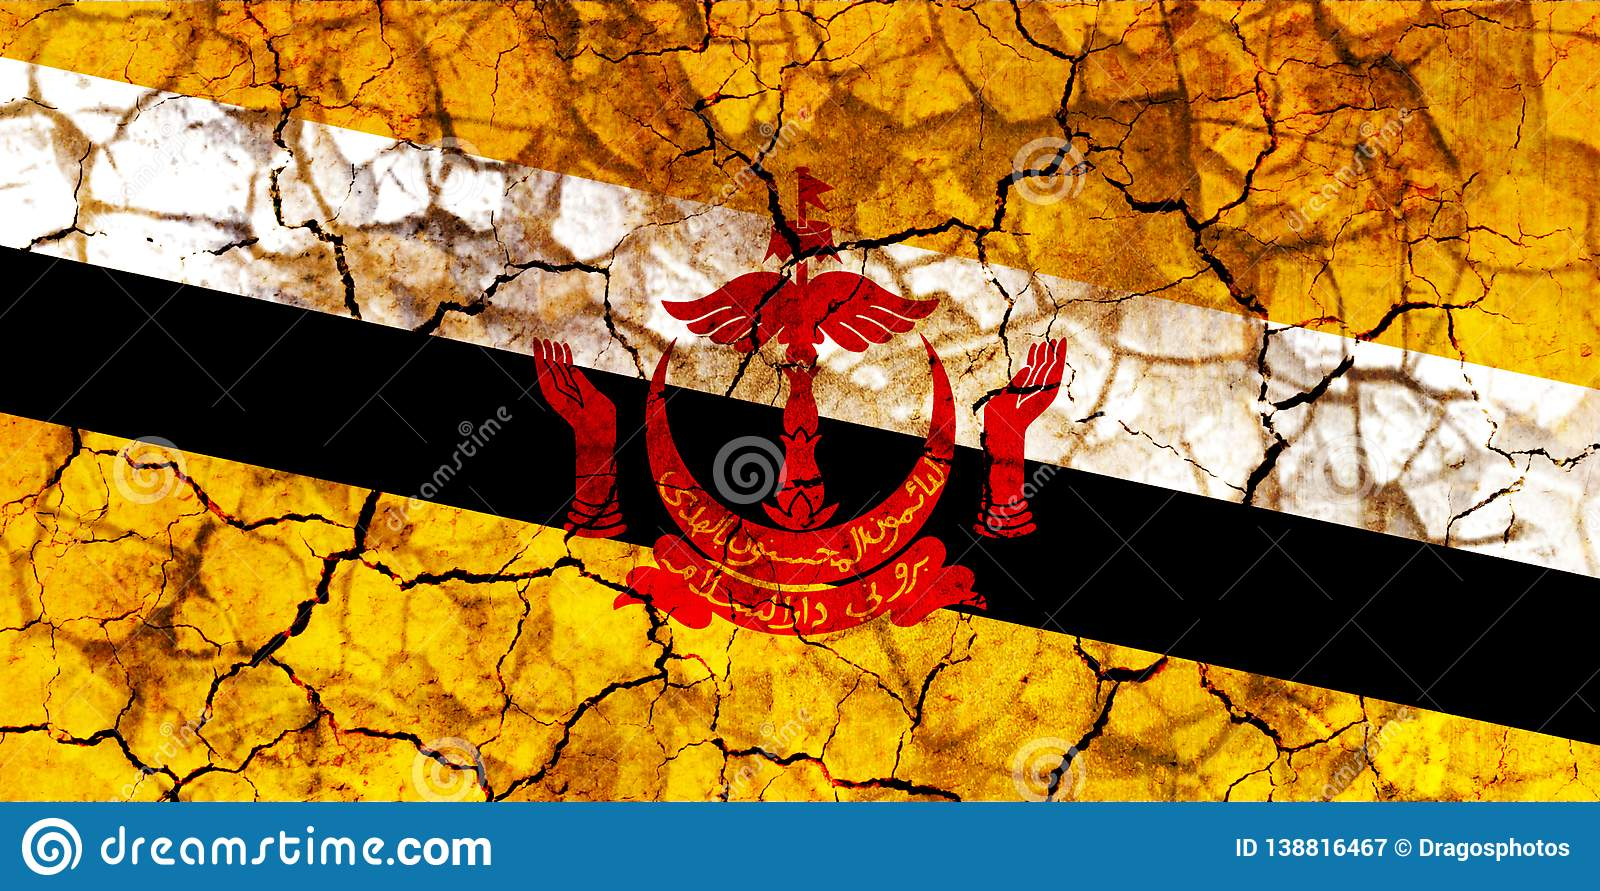 Brunei Country Flag Painted On A Cracked Grungy Wall Stock